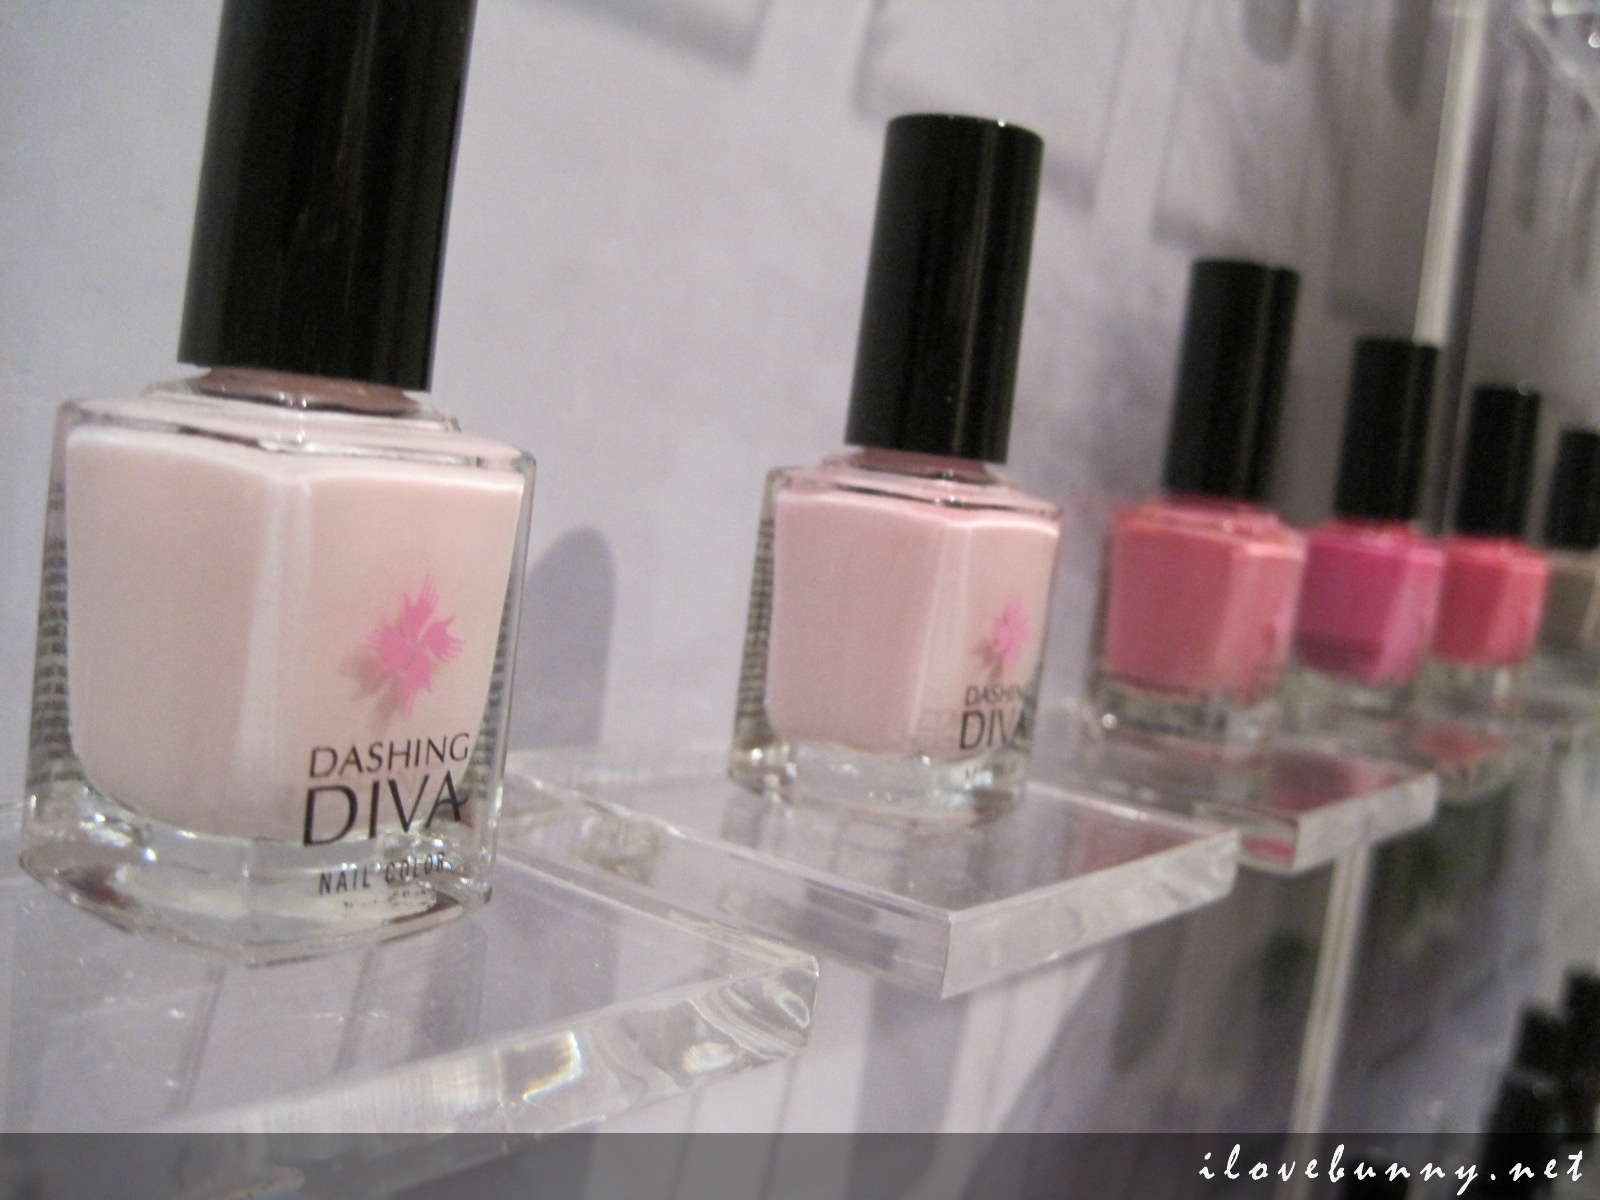 The Latest Nail Sensation, Dashing Diva, Has Hit Our Sunny Singapore ...